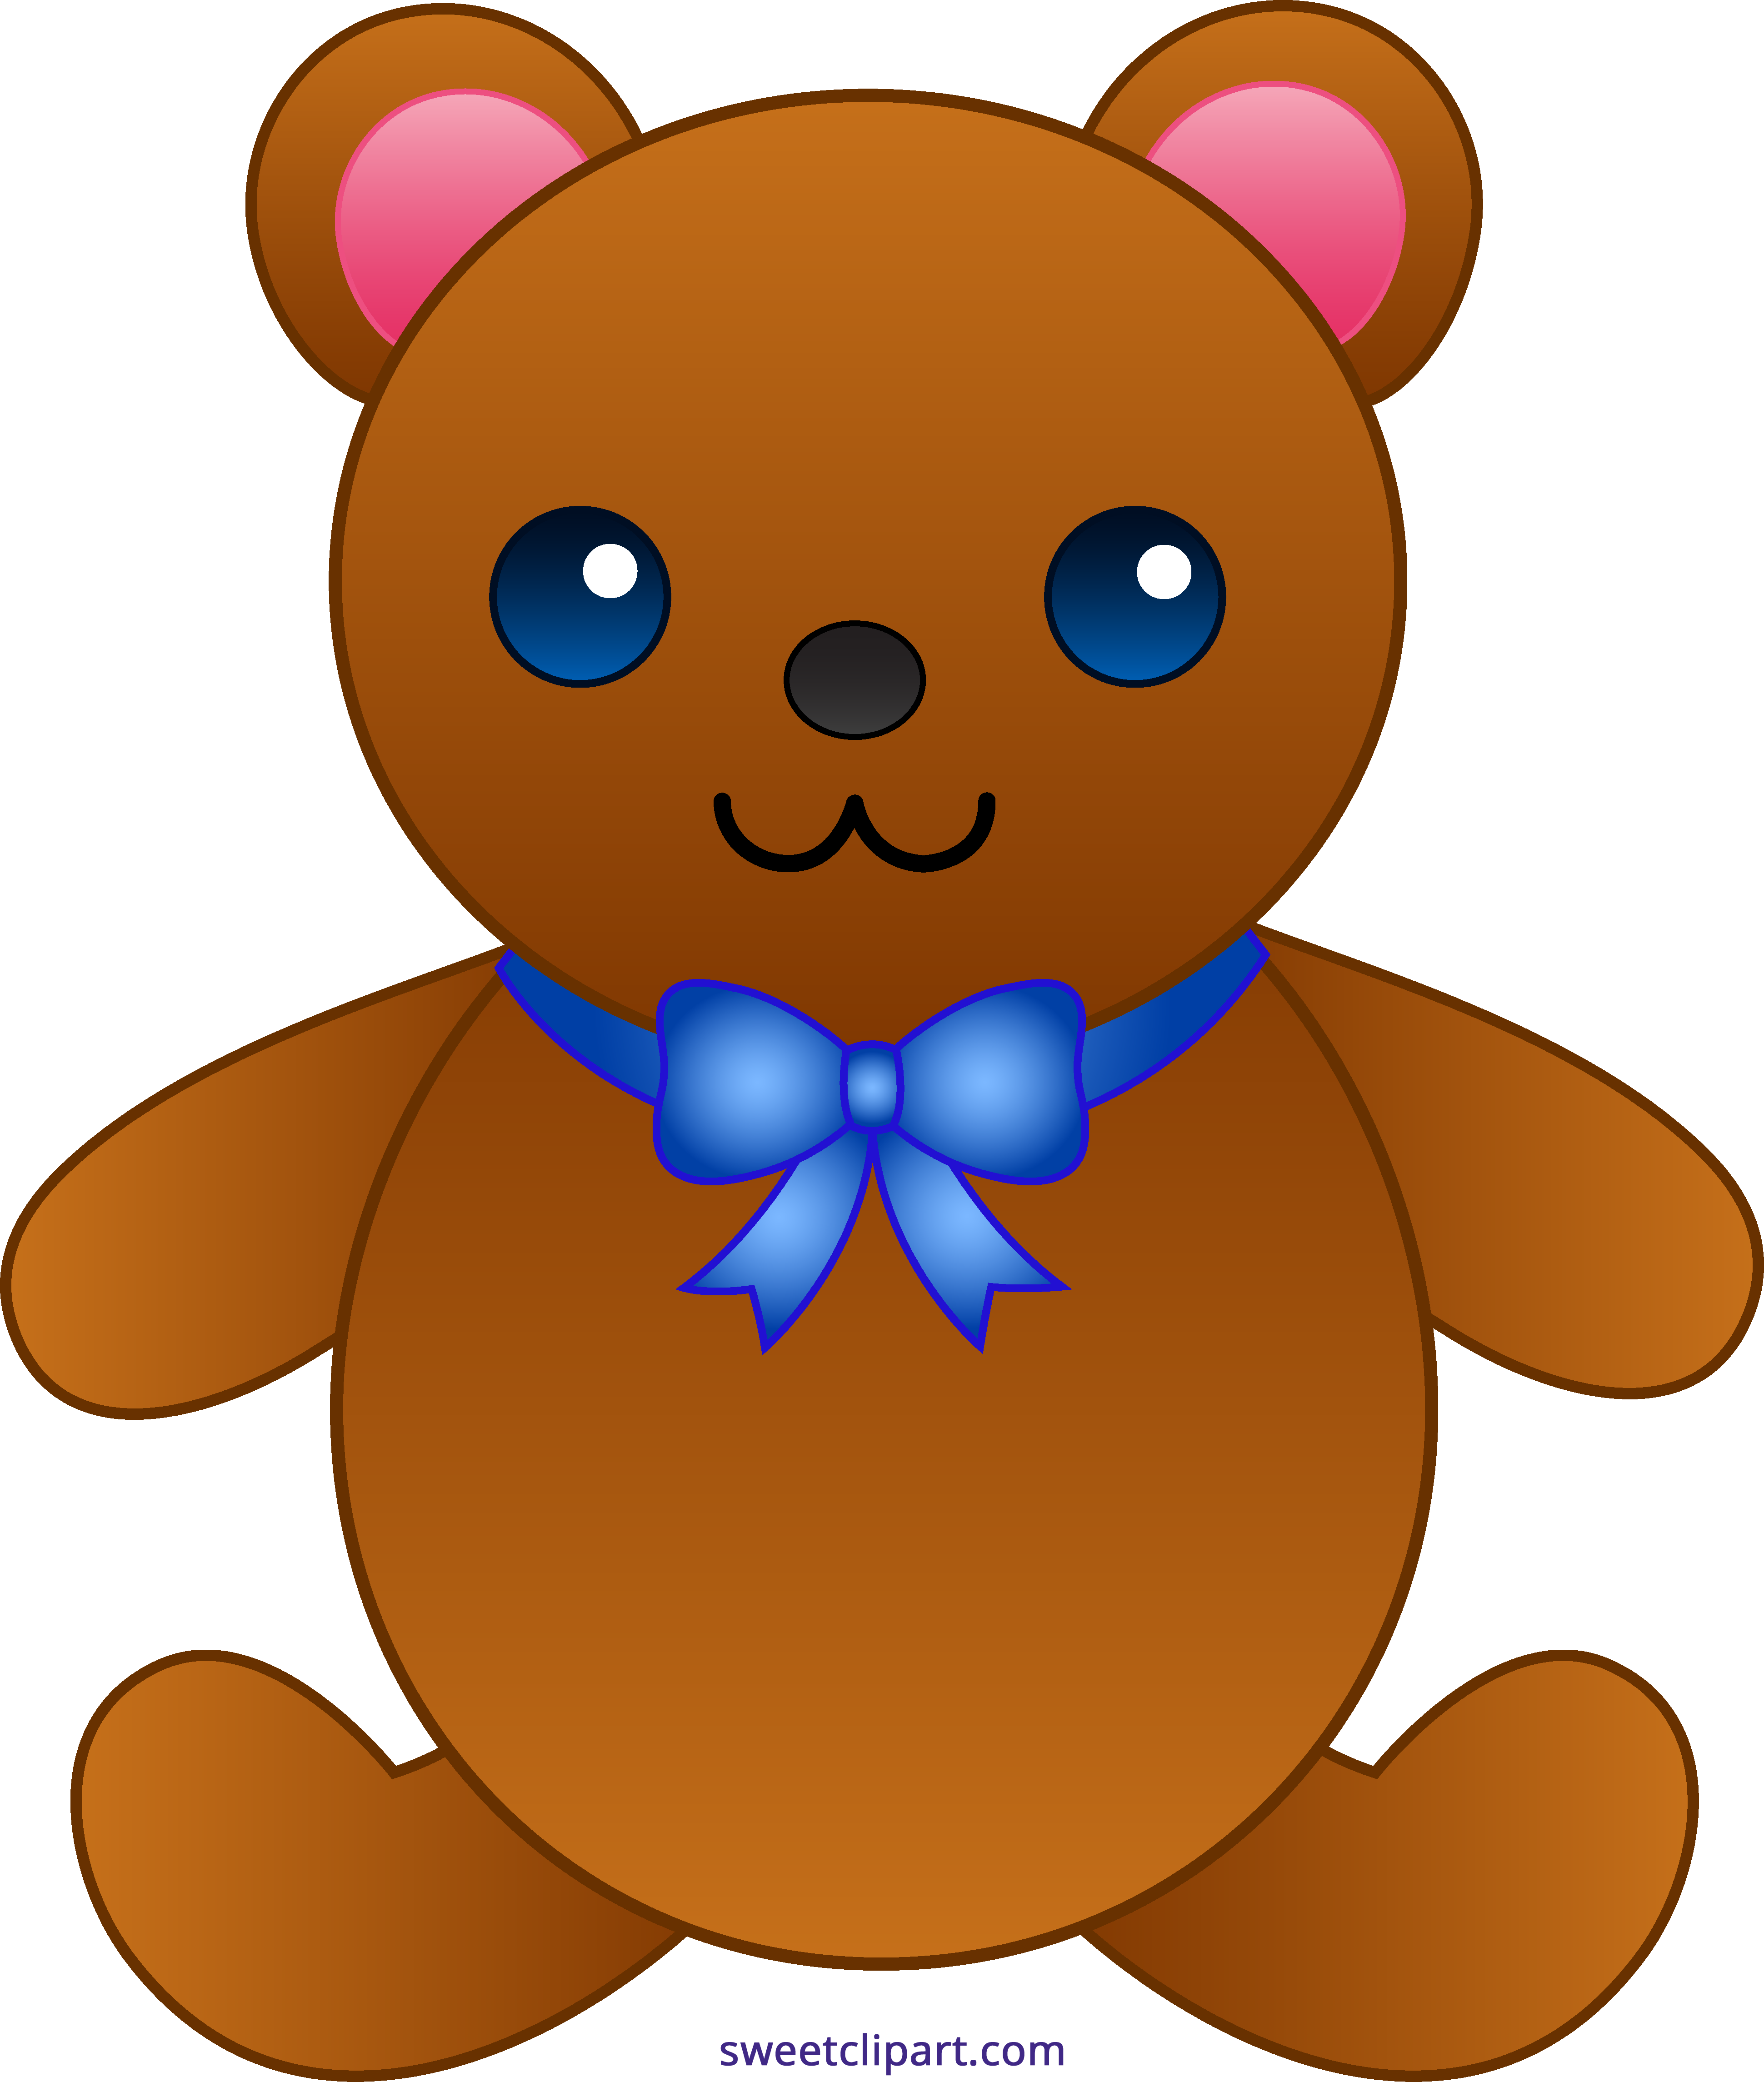 Bear doll clipart clip art transparent stock Teddy bear,Cartoon,Clip art,Brown,Stuffed toy,Bear,Toy,Graphics ... clip art transparent stock